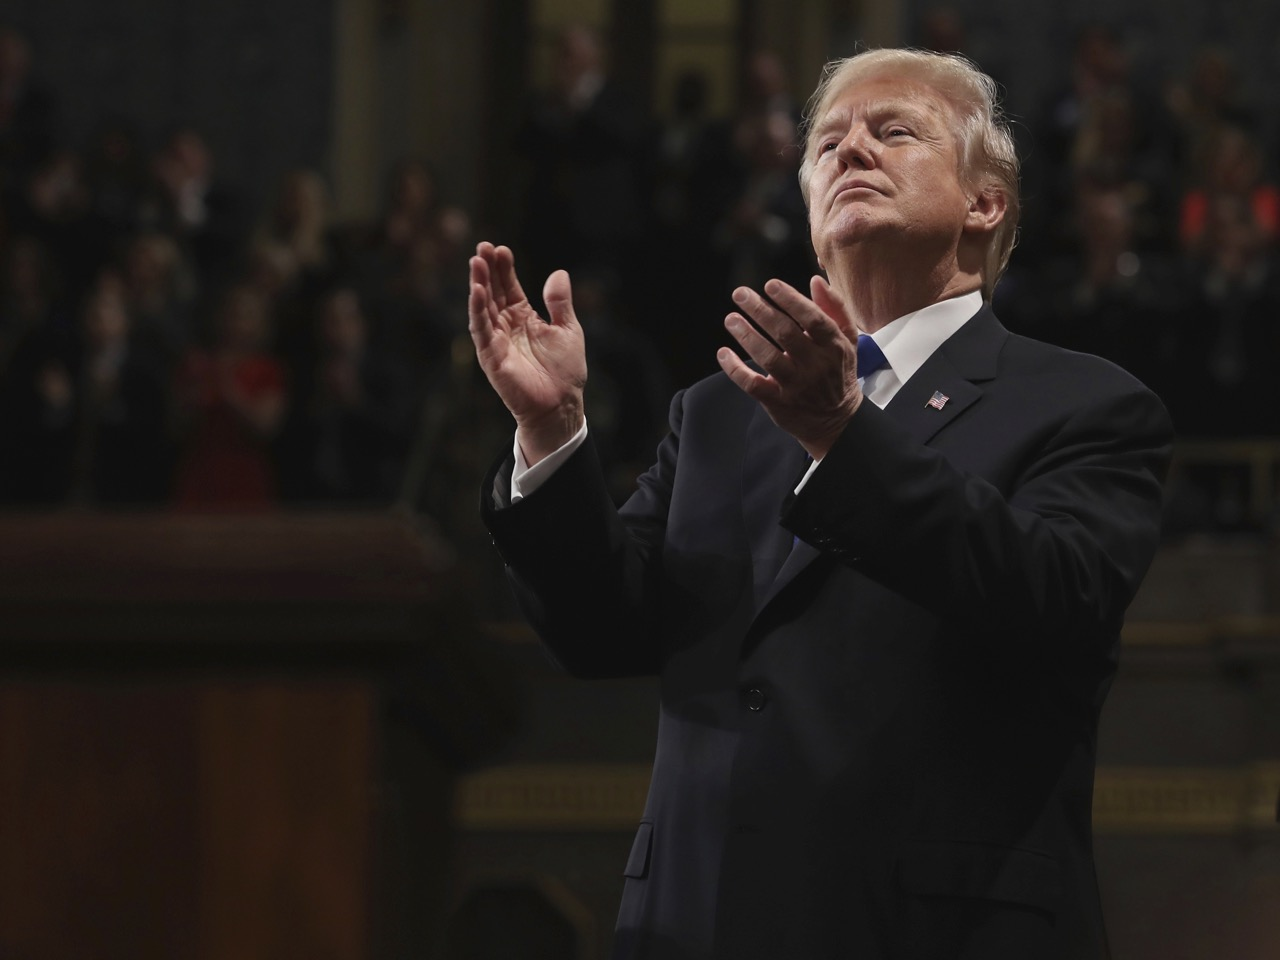 State of Union Photo Gallery